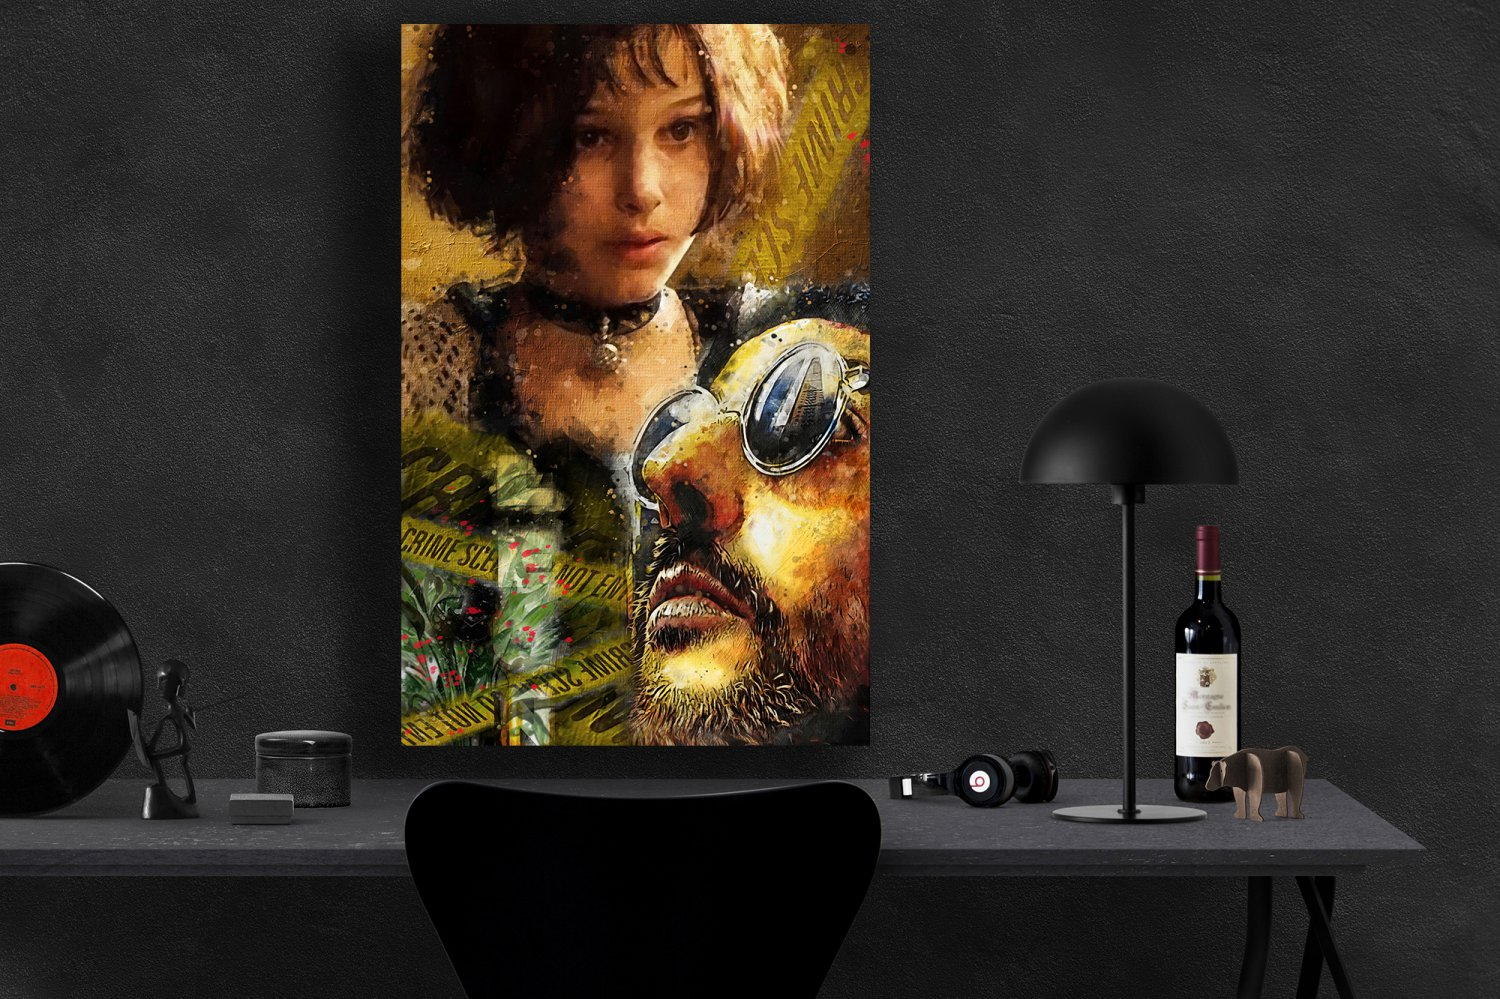 Leon The Professional 1994 Jean Reno, Gary Oldman, Natalie Portman  13x19 inches Poster Print